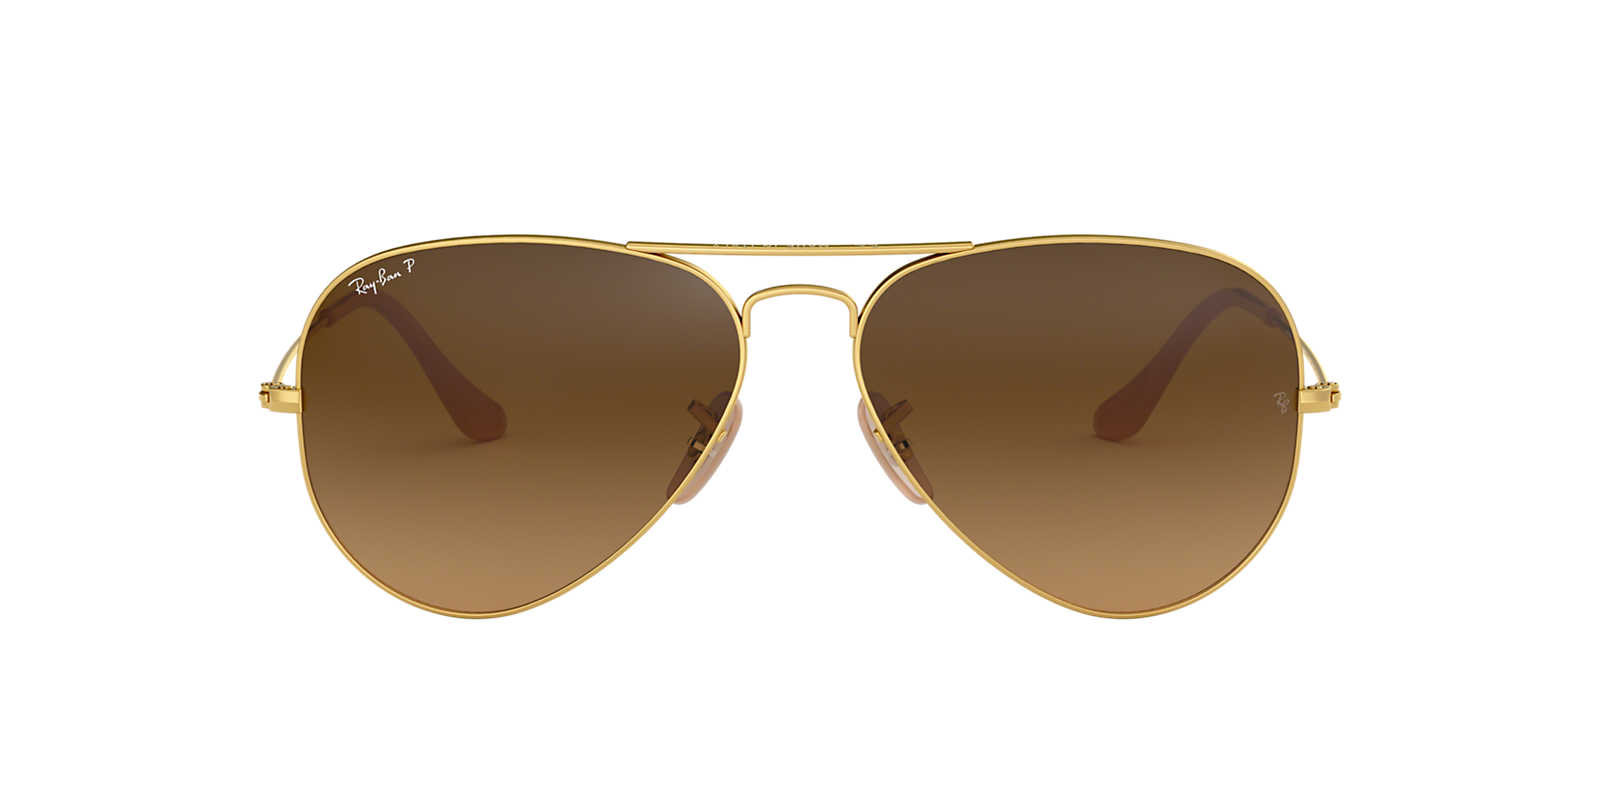 ray ban sunglasses outlet in doha  rb3025 55 original aviator rb3025 55 original aviator · ray ban